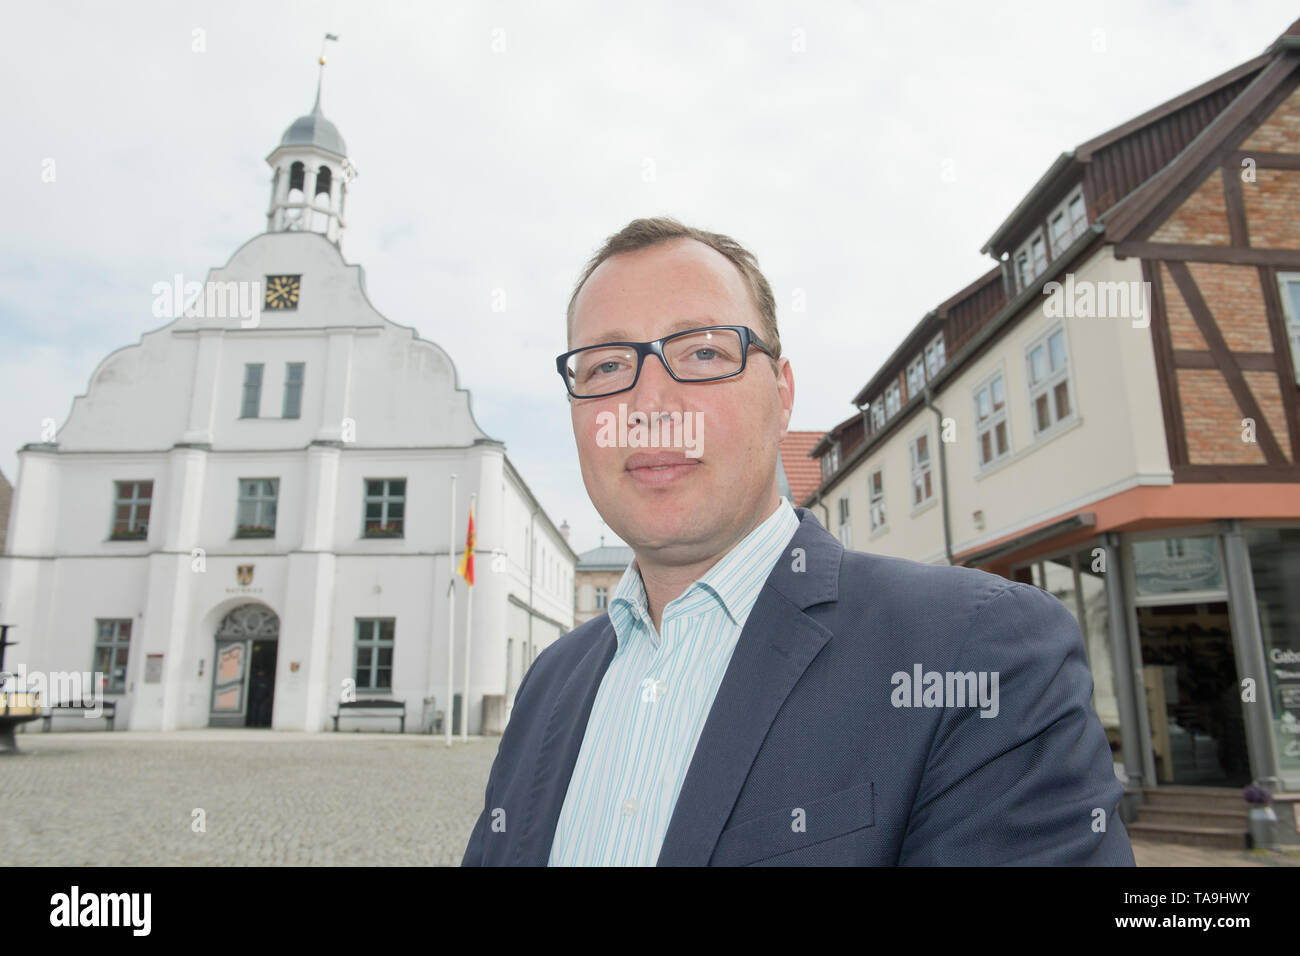 Wolgast, Germany. 21st May, 2019. The mayor of the city of Wolgast, Stefan Weigler (non-party), stands on the town hall square in the centre of the city. Close to the holiday paradise of Usedom lies the historic town of Wolgast. It is struggling with job losses, loss of revenue and an image as the stronghold of right-wing voters. Credit: Stefan Sauer/dpa-Zentralbild/dpa/Alamy Live News - Stock Image